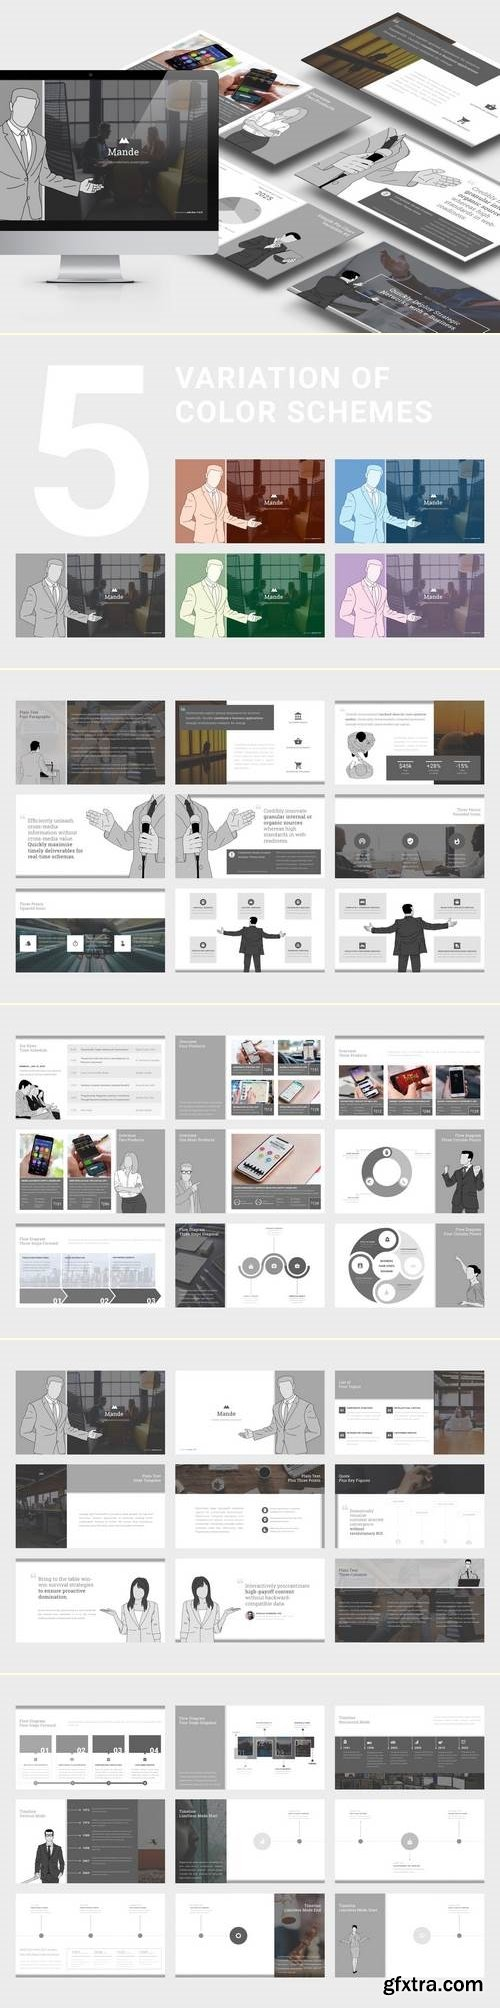 Mande : Company Credentials PowerPoint Template